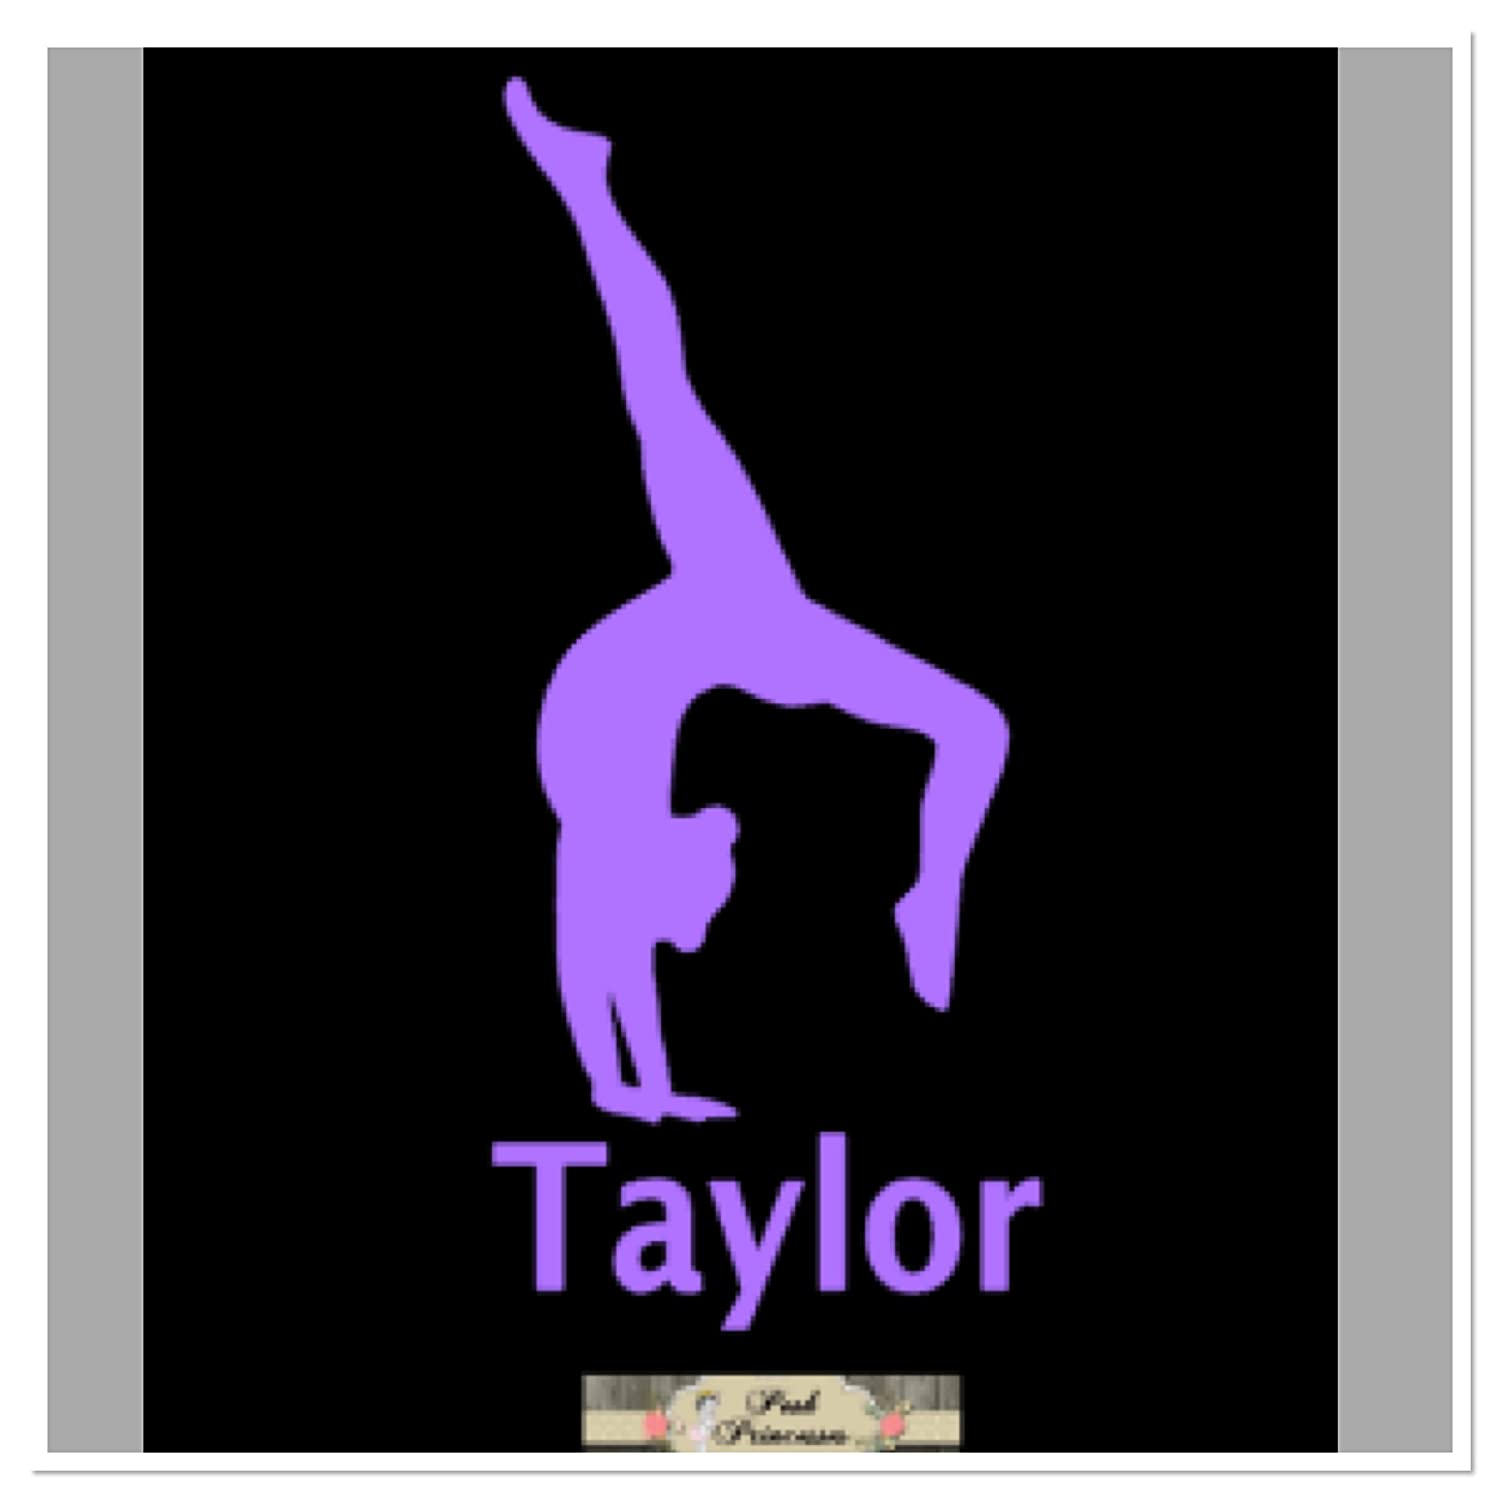 Gymnastic Decal Car Window Decal Laptop Sticker Backbend Walkover Handstand Decal ANY COLOR 4 x 2